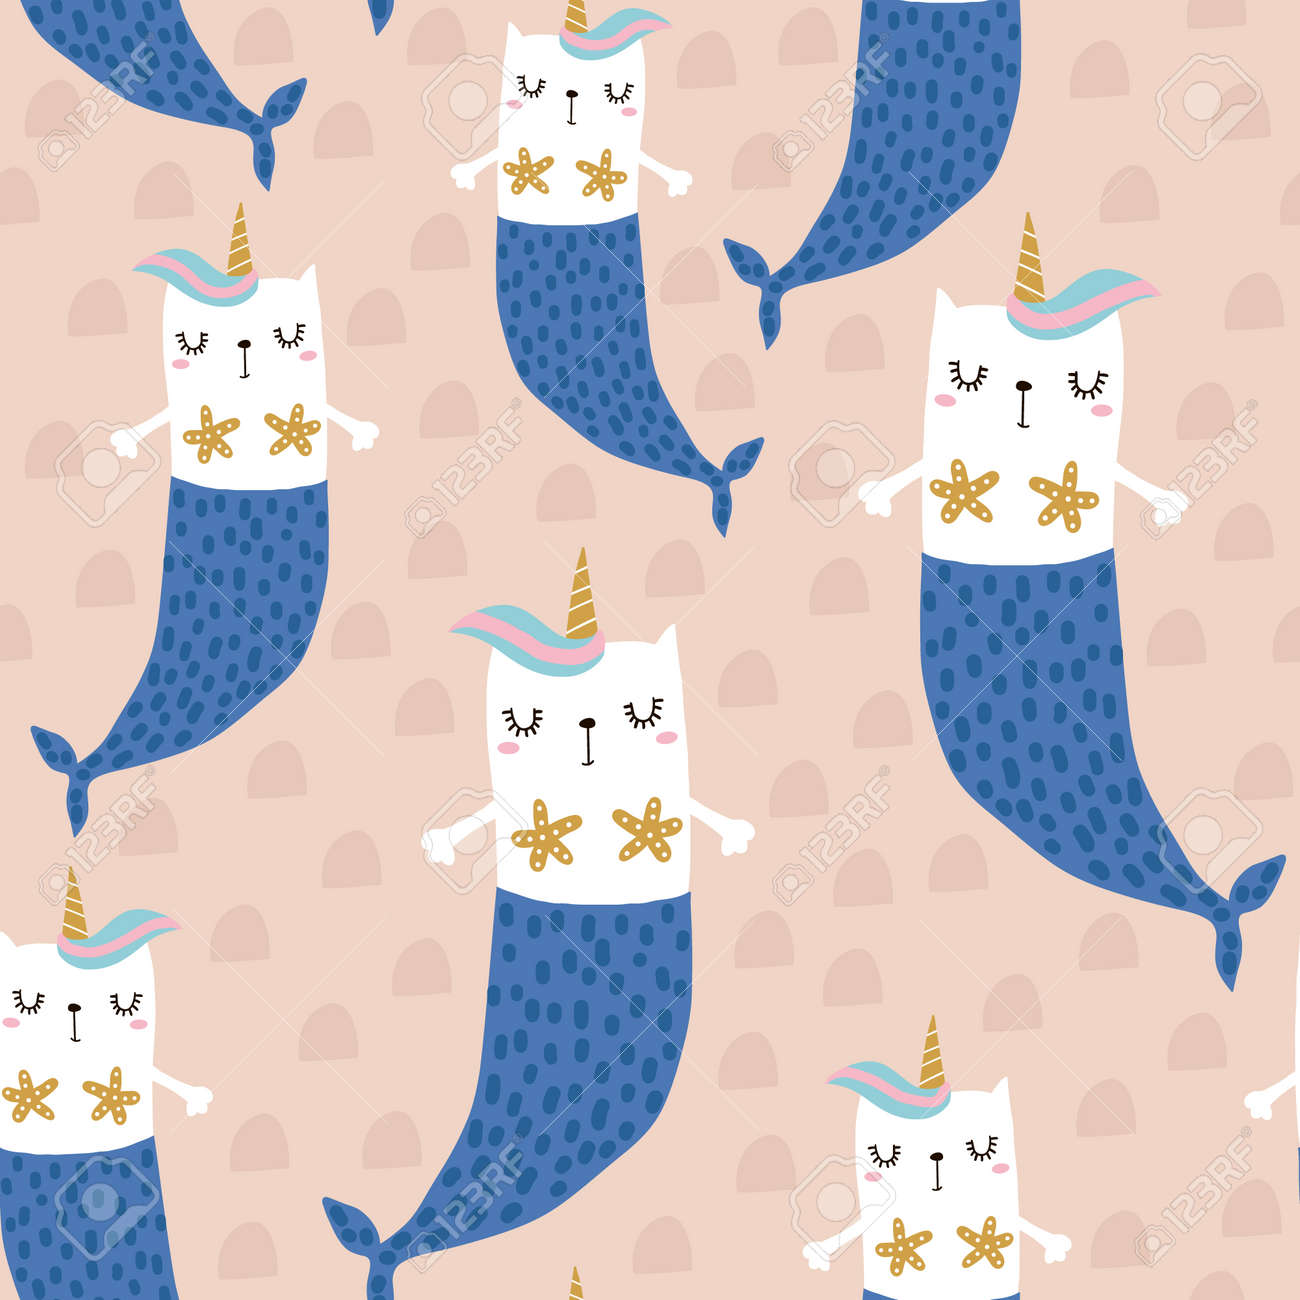 Magic cat mermaid with horn. Seamless childish pattern for apparel, fabric, textile.Vector illustration - 104442487